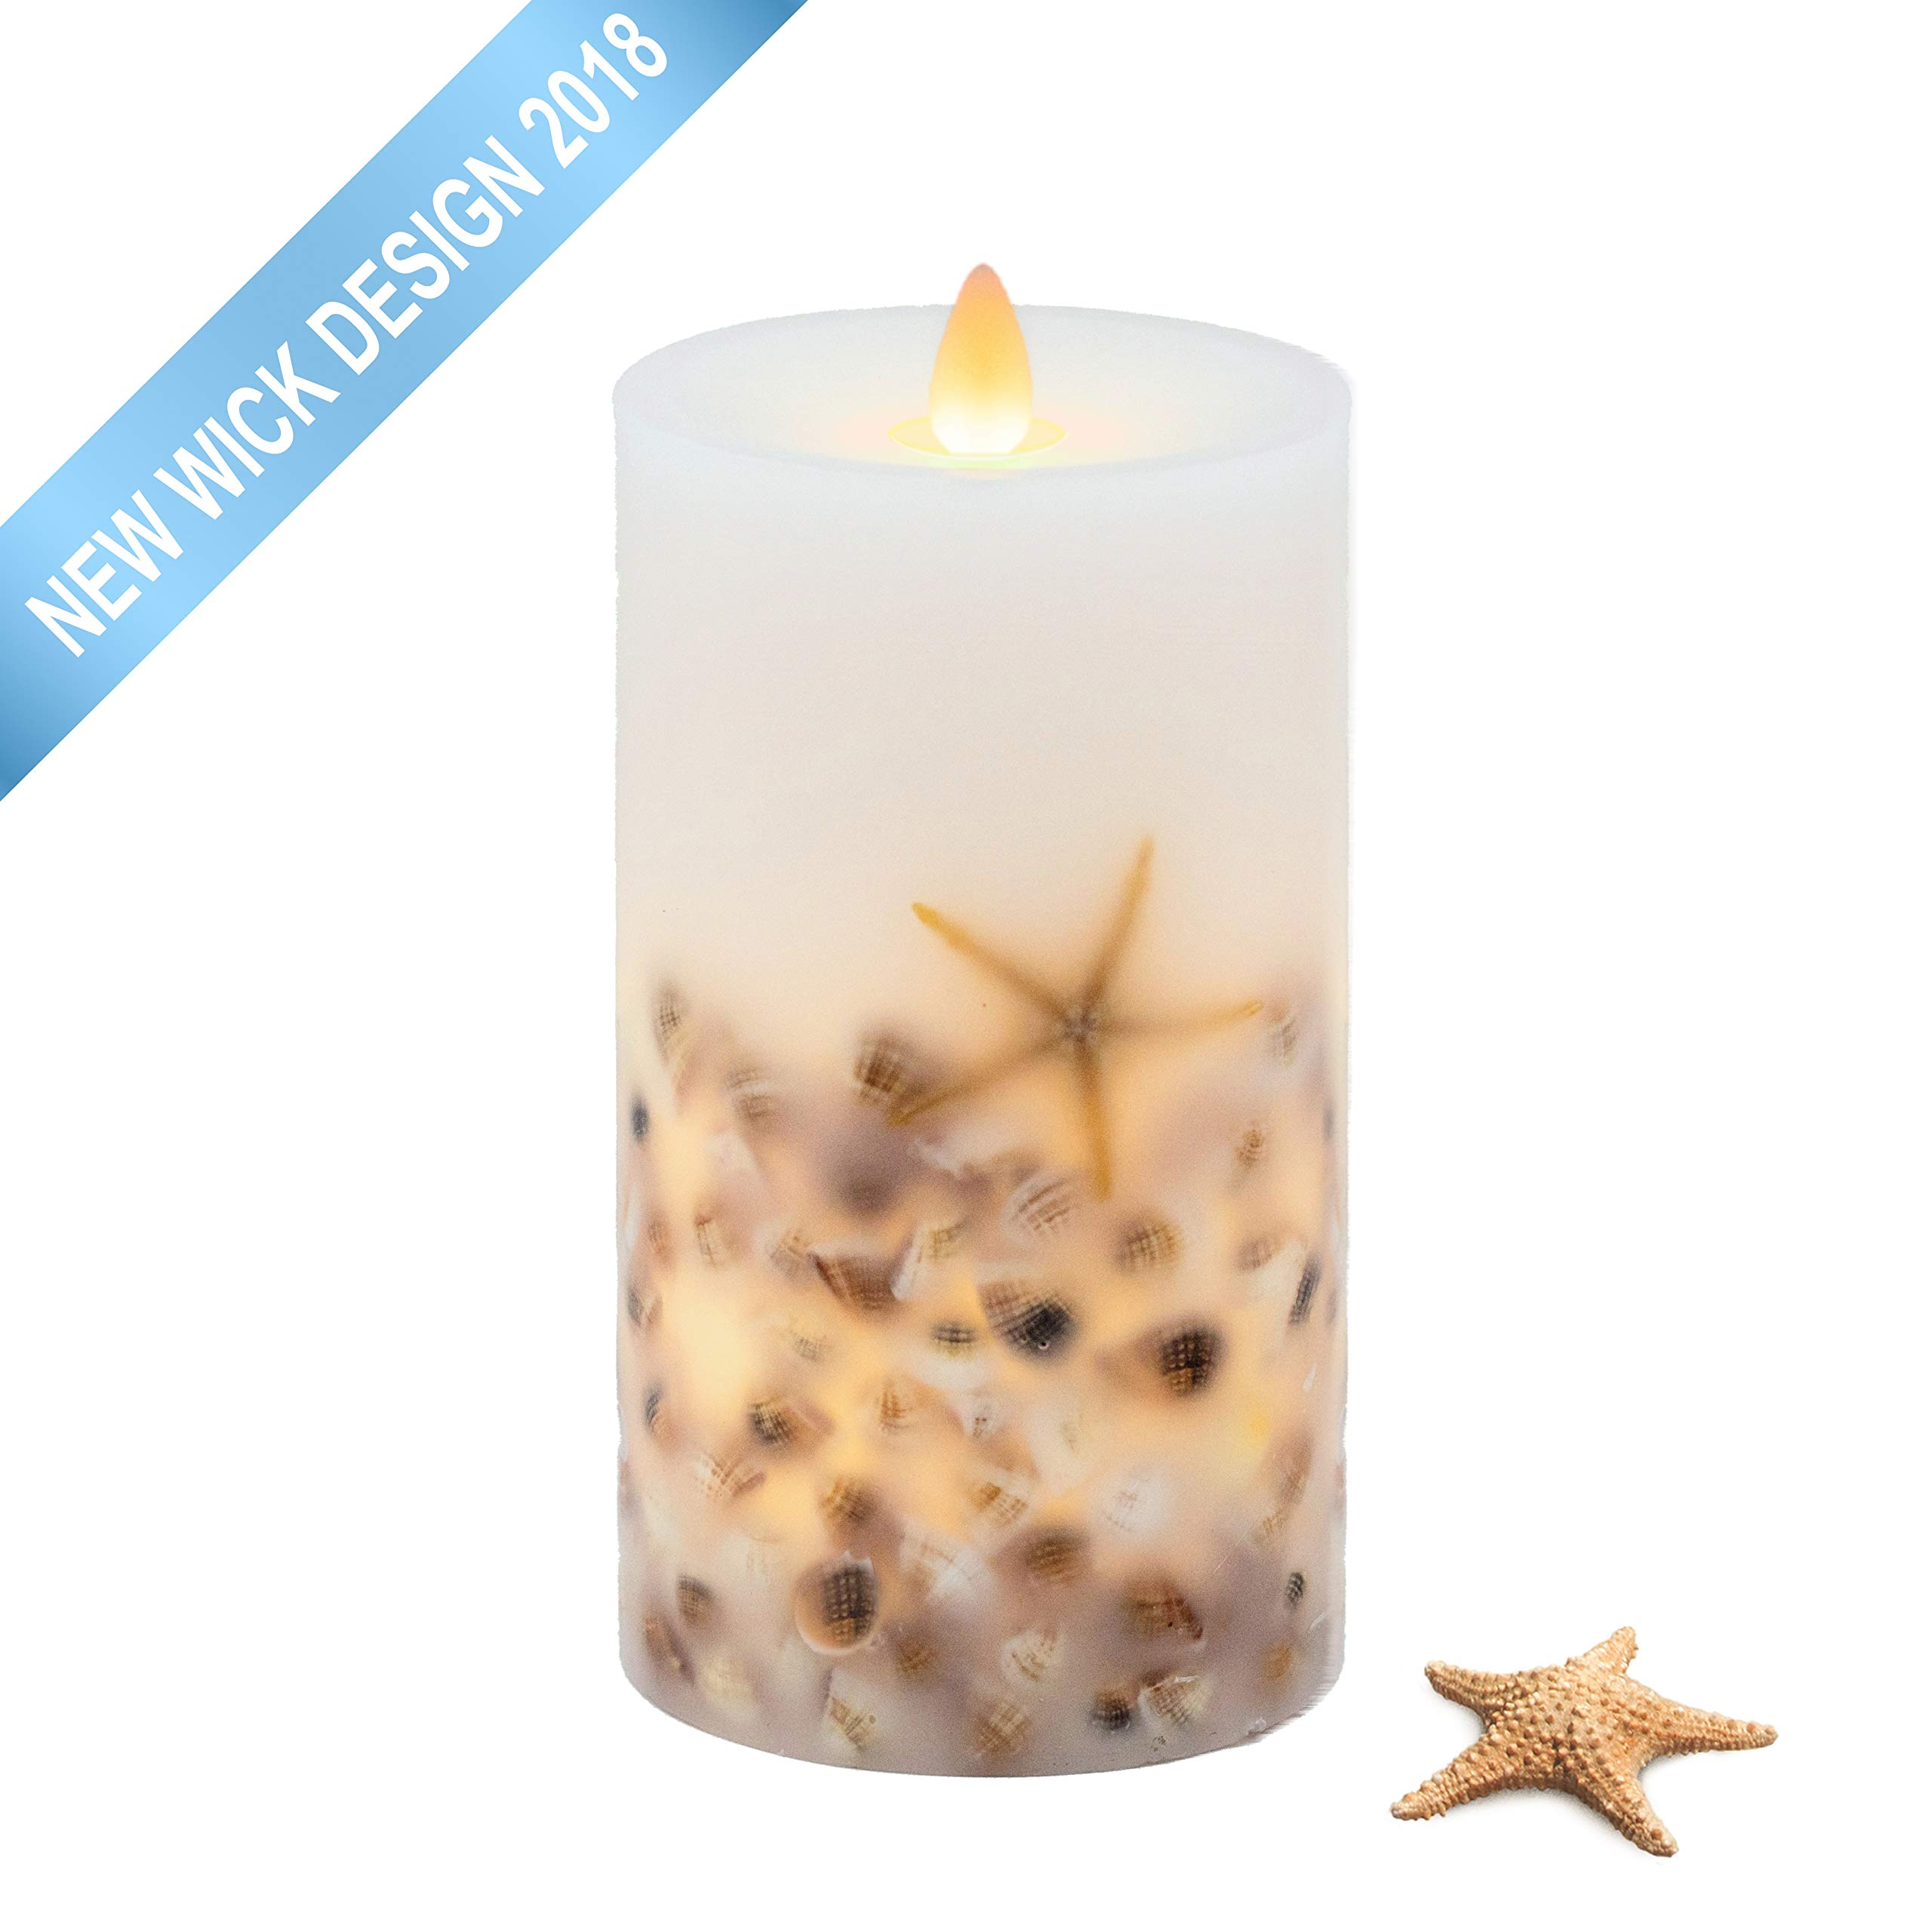 Hooga Life Seashell Flameless LED Pillar Candle | 3.5WX7T | Moving Flickering Flame | Battery Operated with Timer |Universal Remote Ready | Child & Pet Safe | Coastal Beach Décor